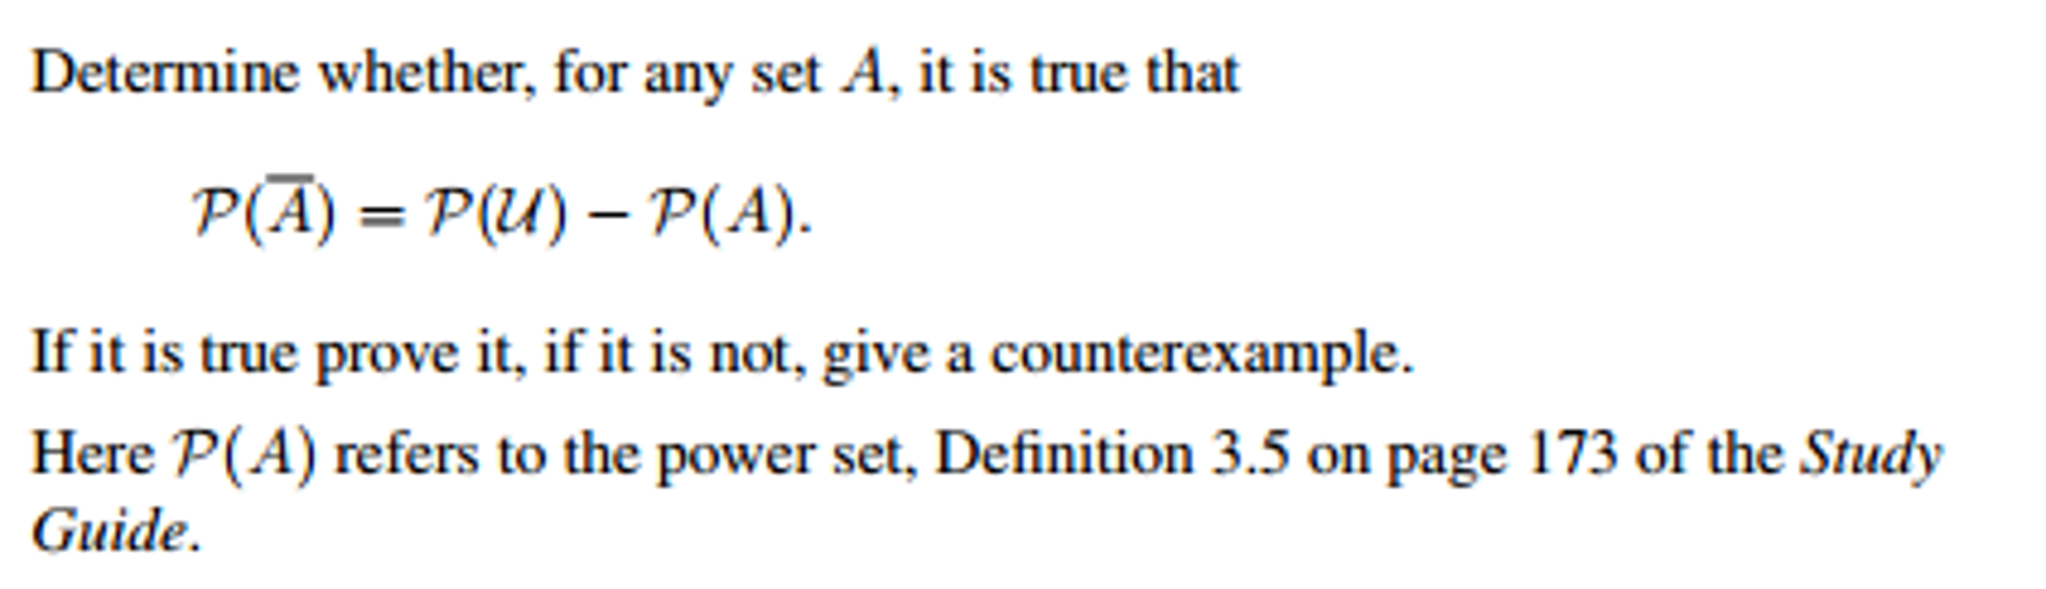 solved: determine whether, for any set a, it is true that